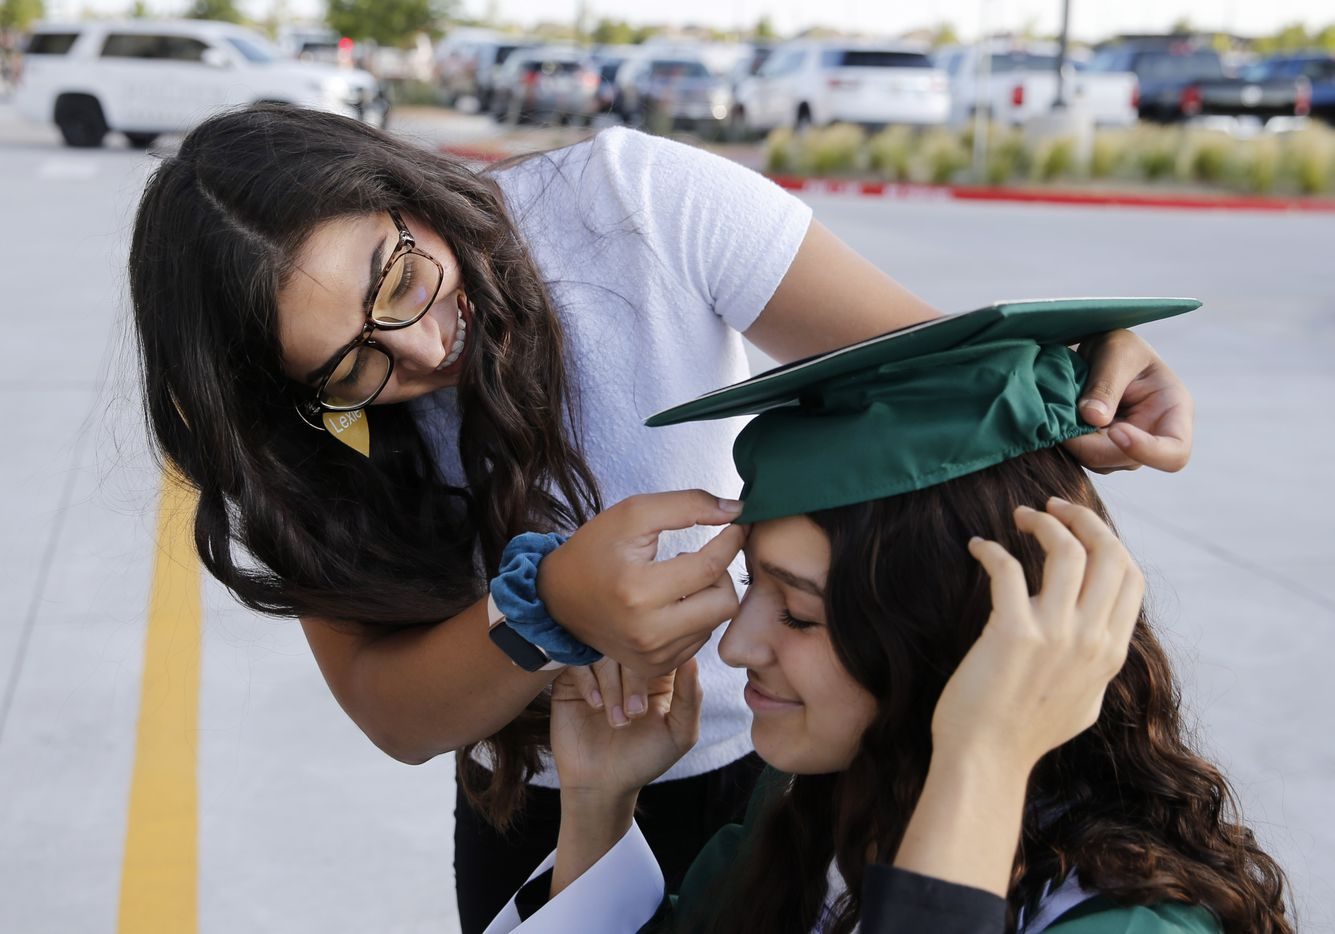 Prosper High School softball player Lexie Bell gets help from her sister Tori Bell with her cap prior to Prosper High School's graduation ceremony at Children's Health Stadium in Prosper, Texas on Friday, June 5, 2020. Bell signed to play softball at St. Edward's University. But she was recently diagnosed with Ewing Sarcoma, a rare form of cancer.